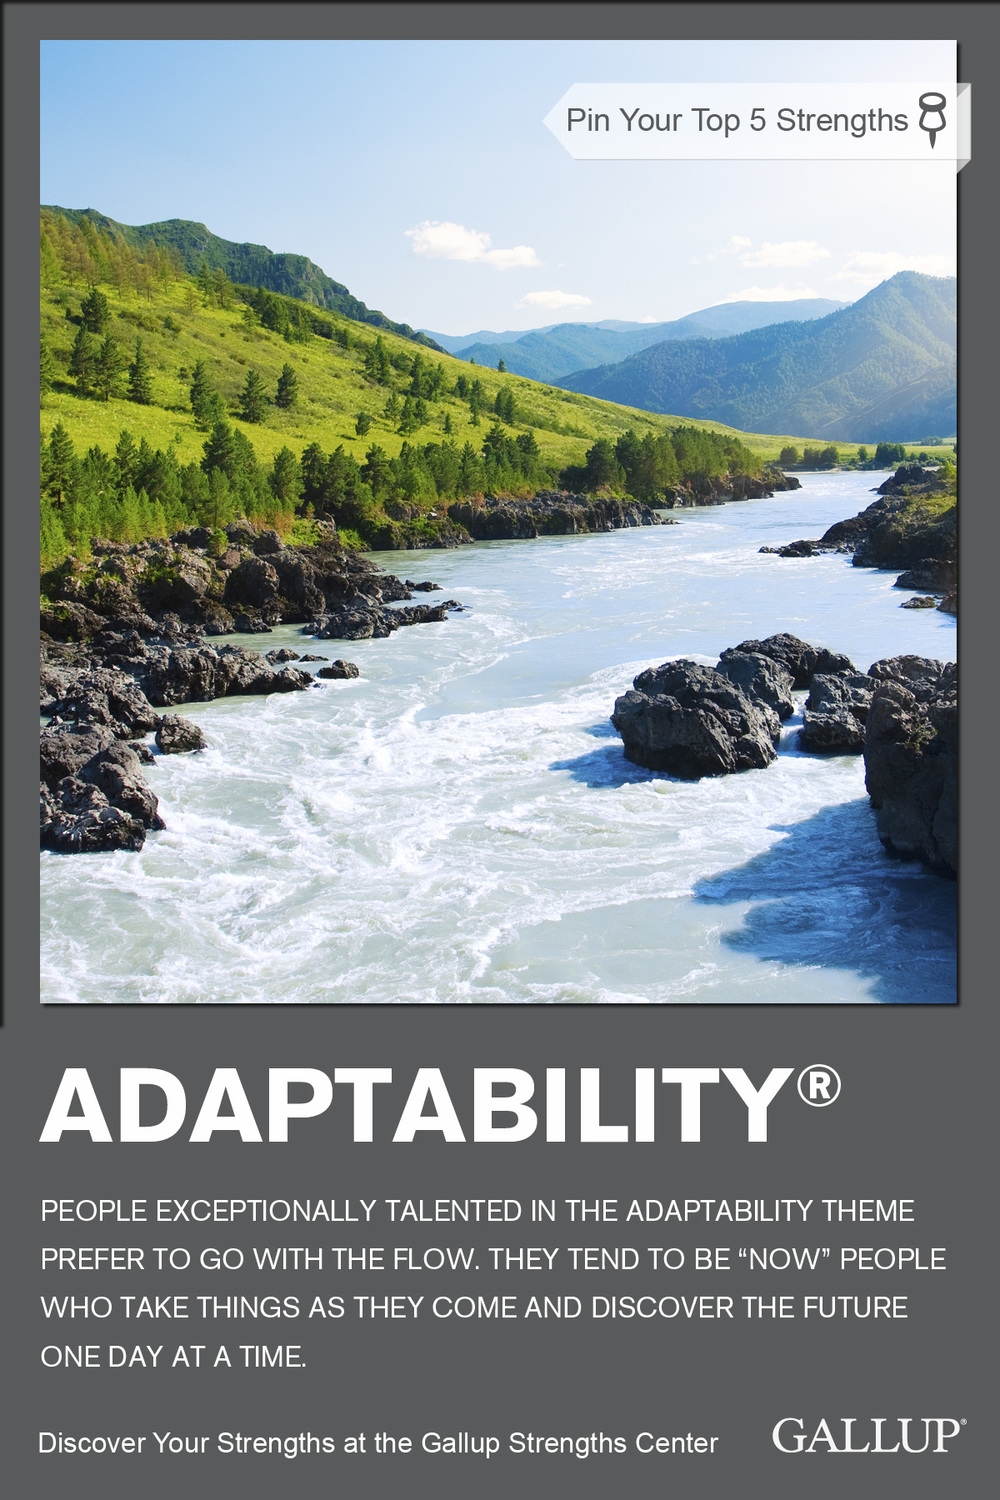 Adaptability Strengths School StrengthsFinder Singapore.jpg